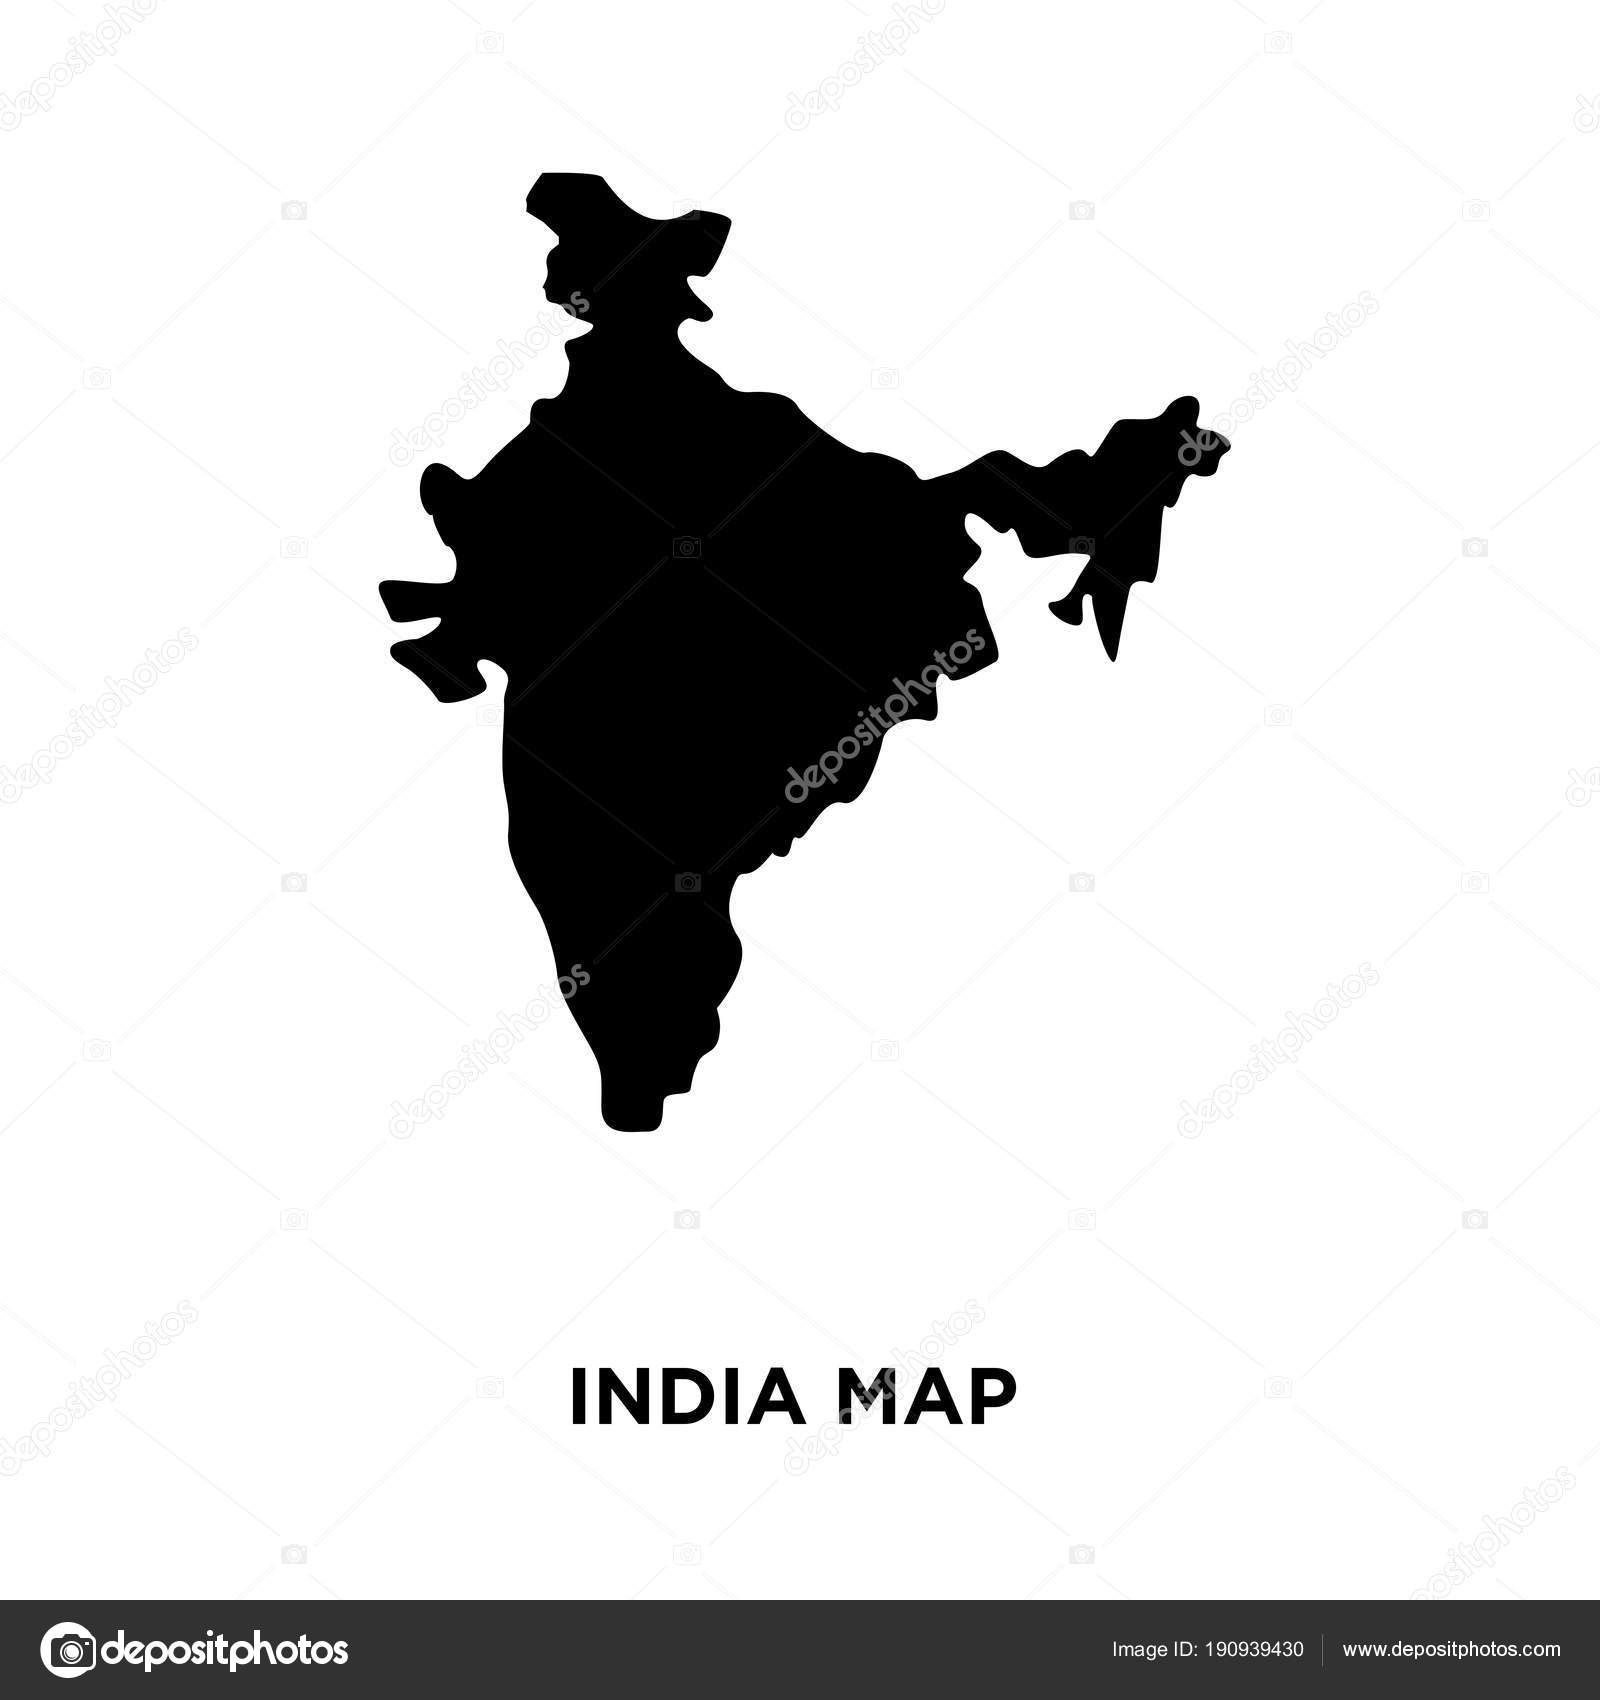 India Map Silhouette Png On White Background Vector Illustration